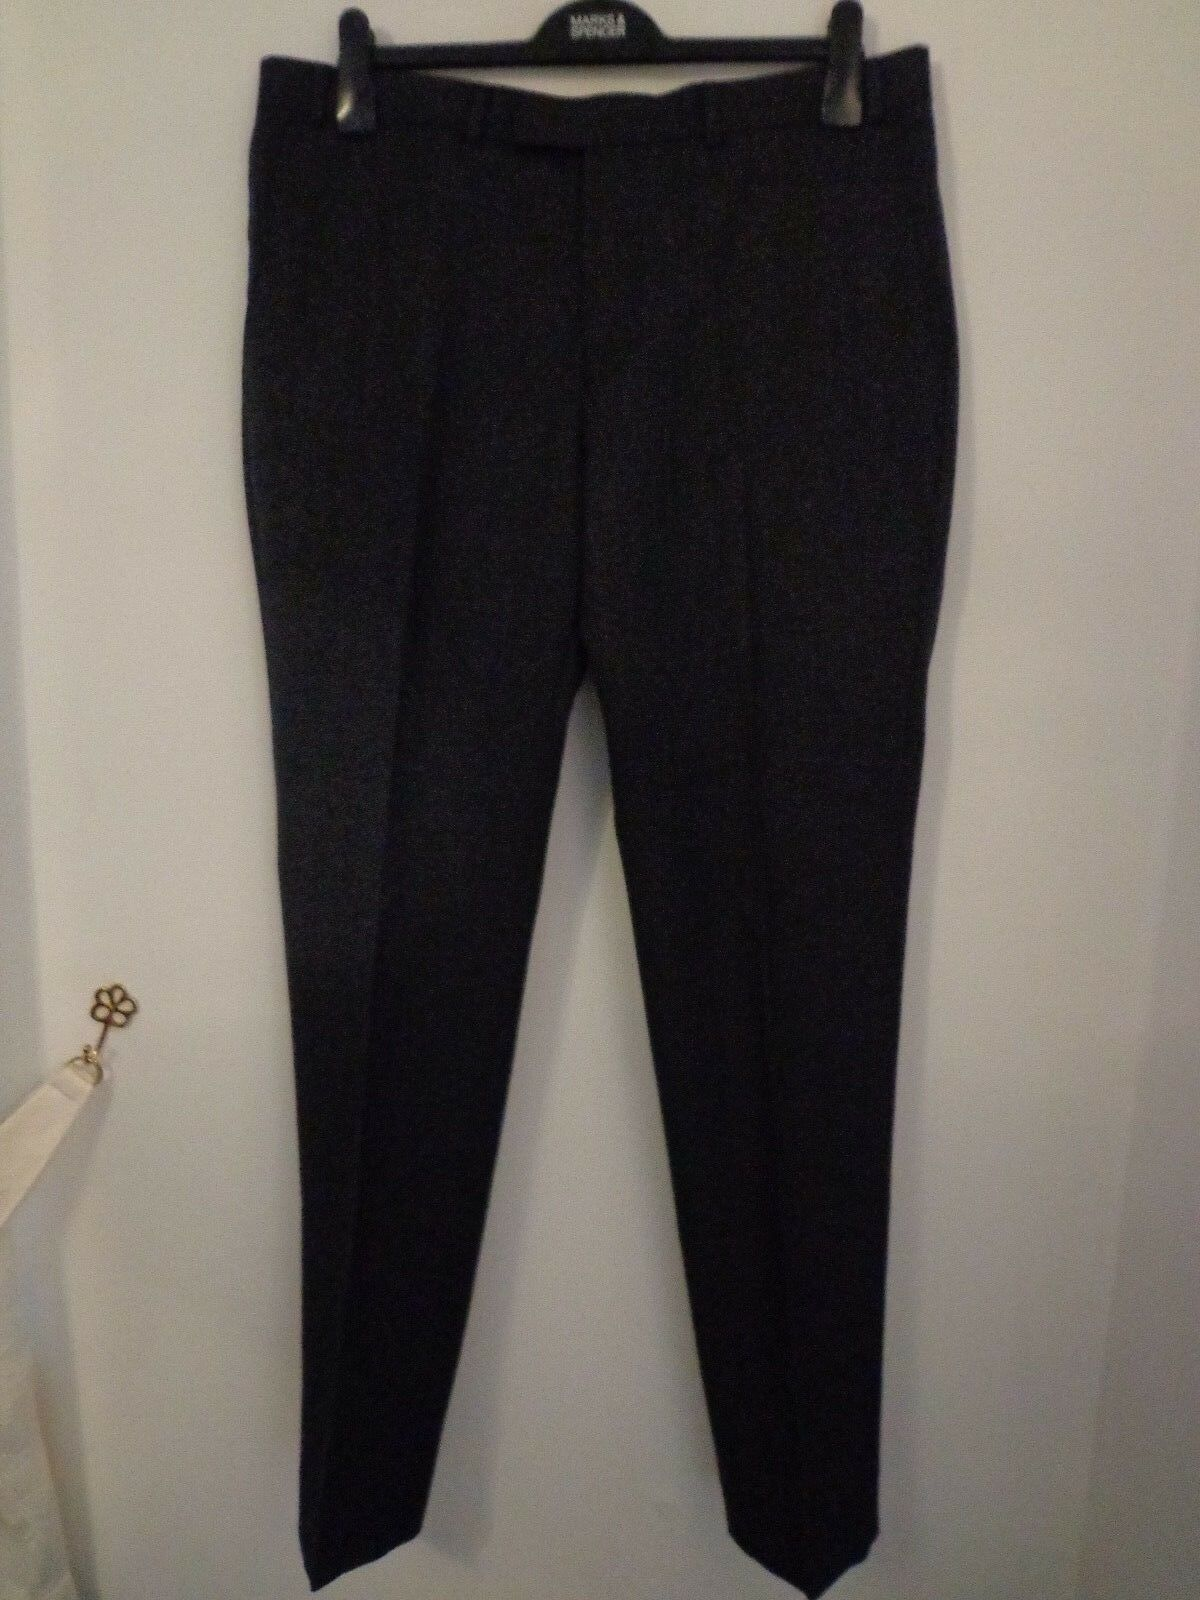 BNWT MENS M&S COLLECTION LUXURY RANGE CHARCOAL TROUSERS WAIST 44